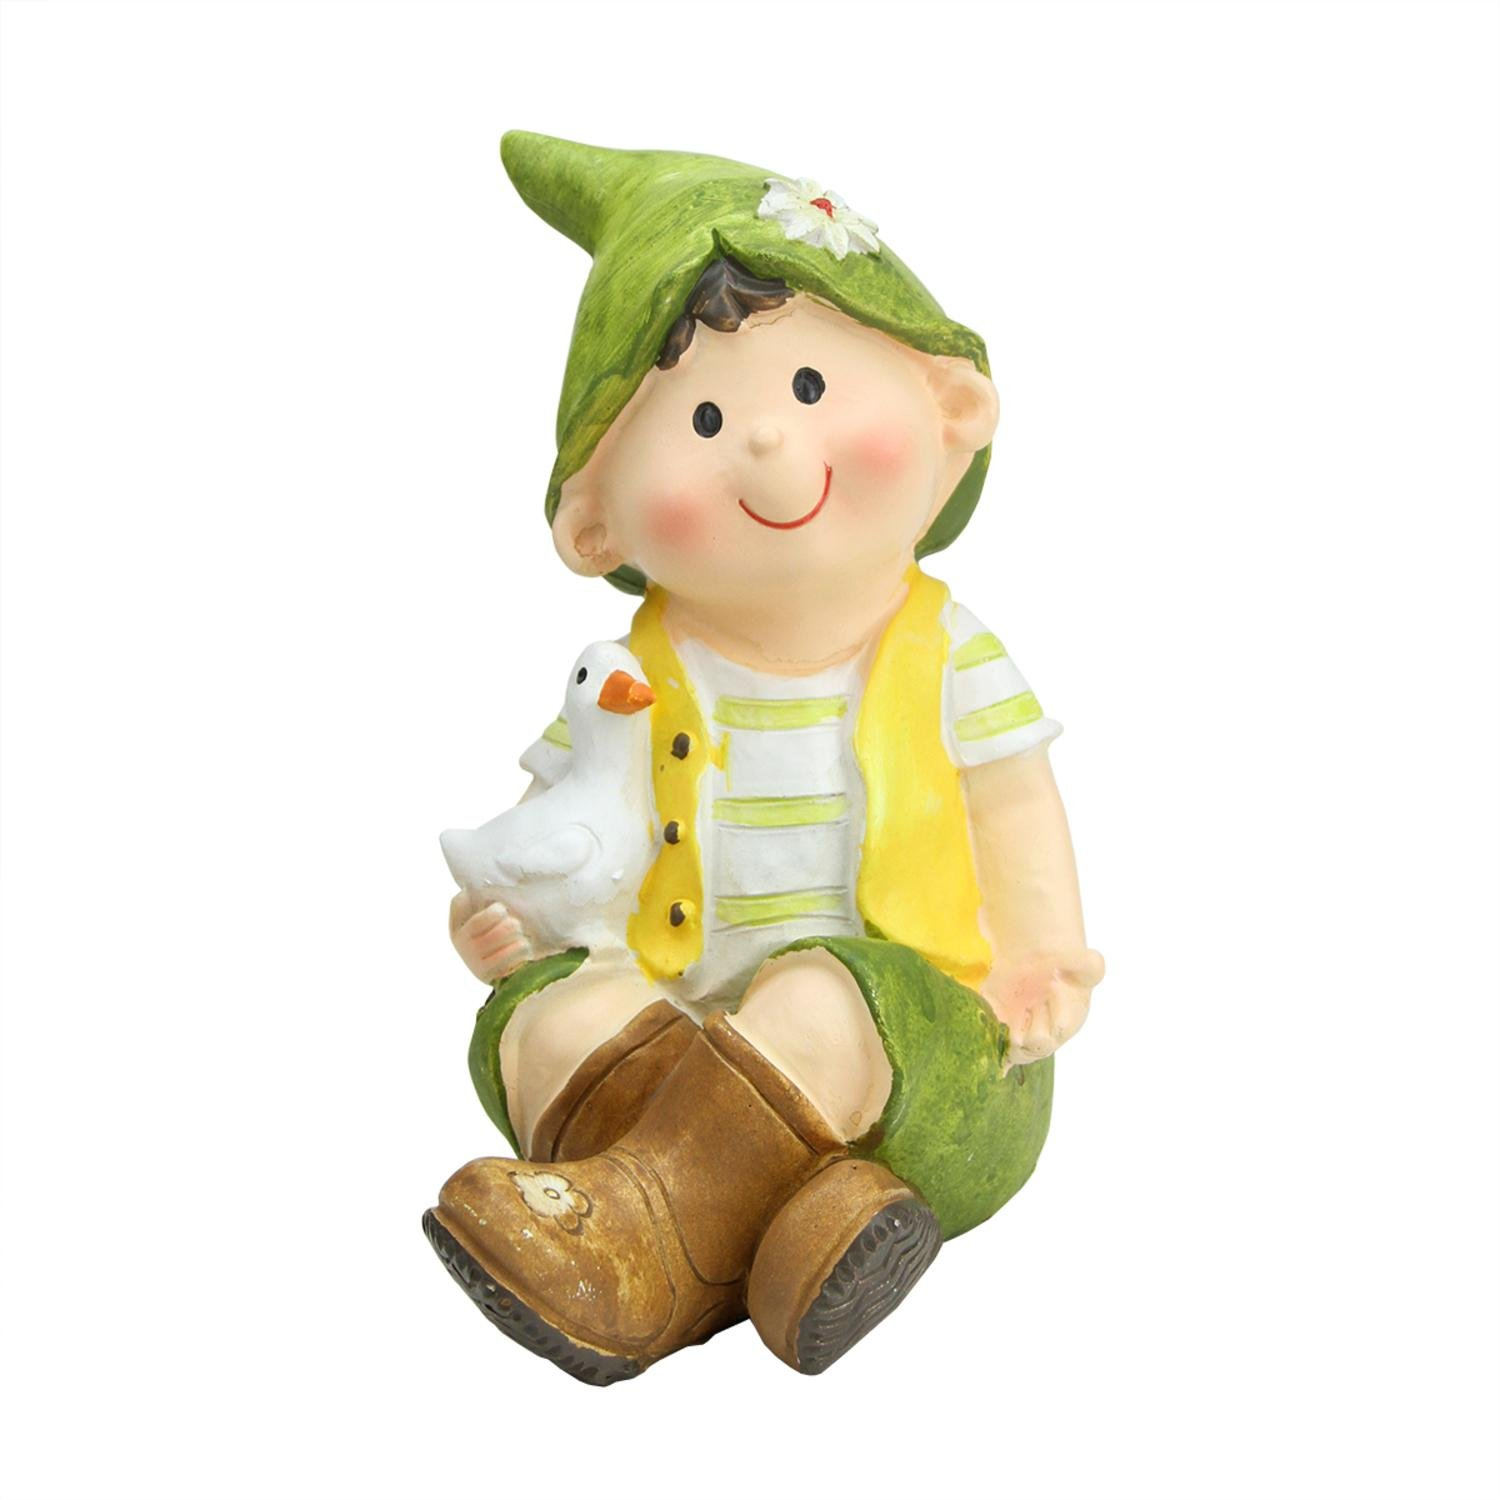 Northlight QQ76229 A Young Boy Gnome Sitting with Duck Spring Outdoor Garden Patio Figure Statuary and Fountains, 7'', Green